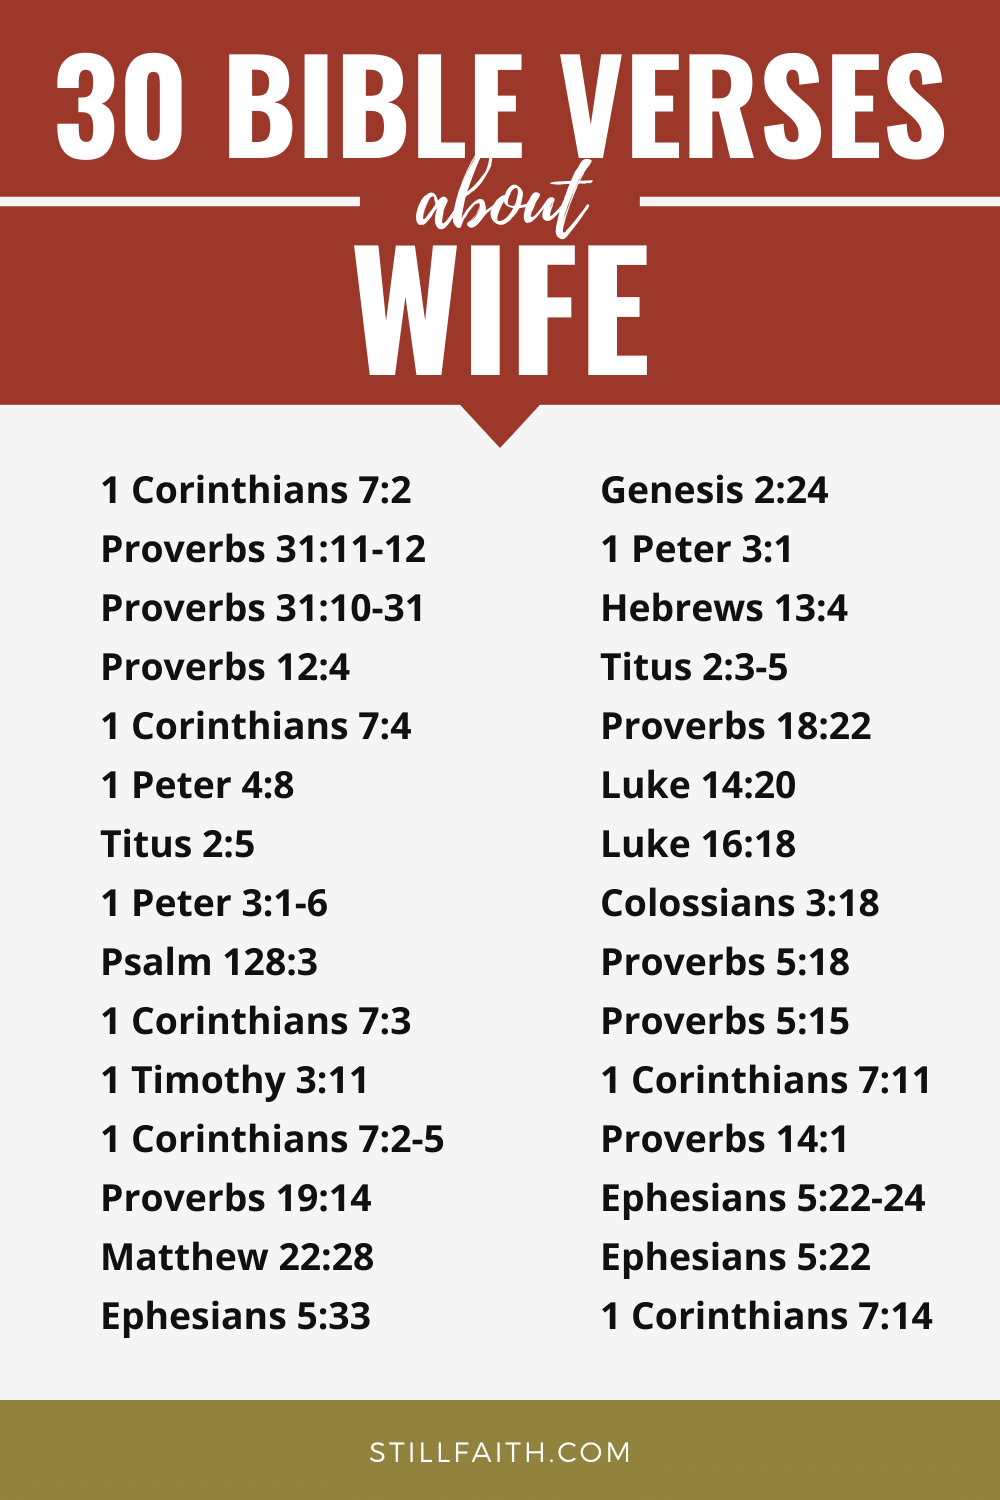 173 Bible Verses about Wife